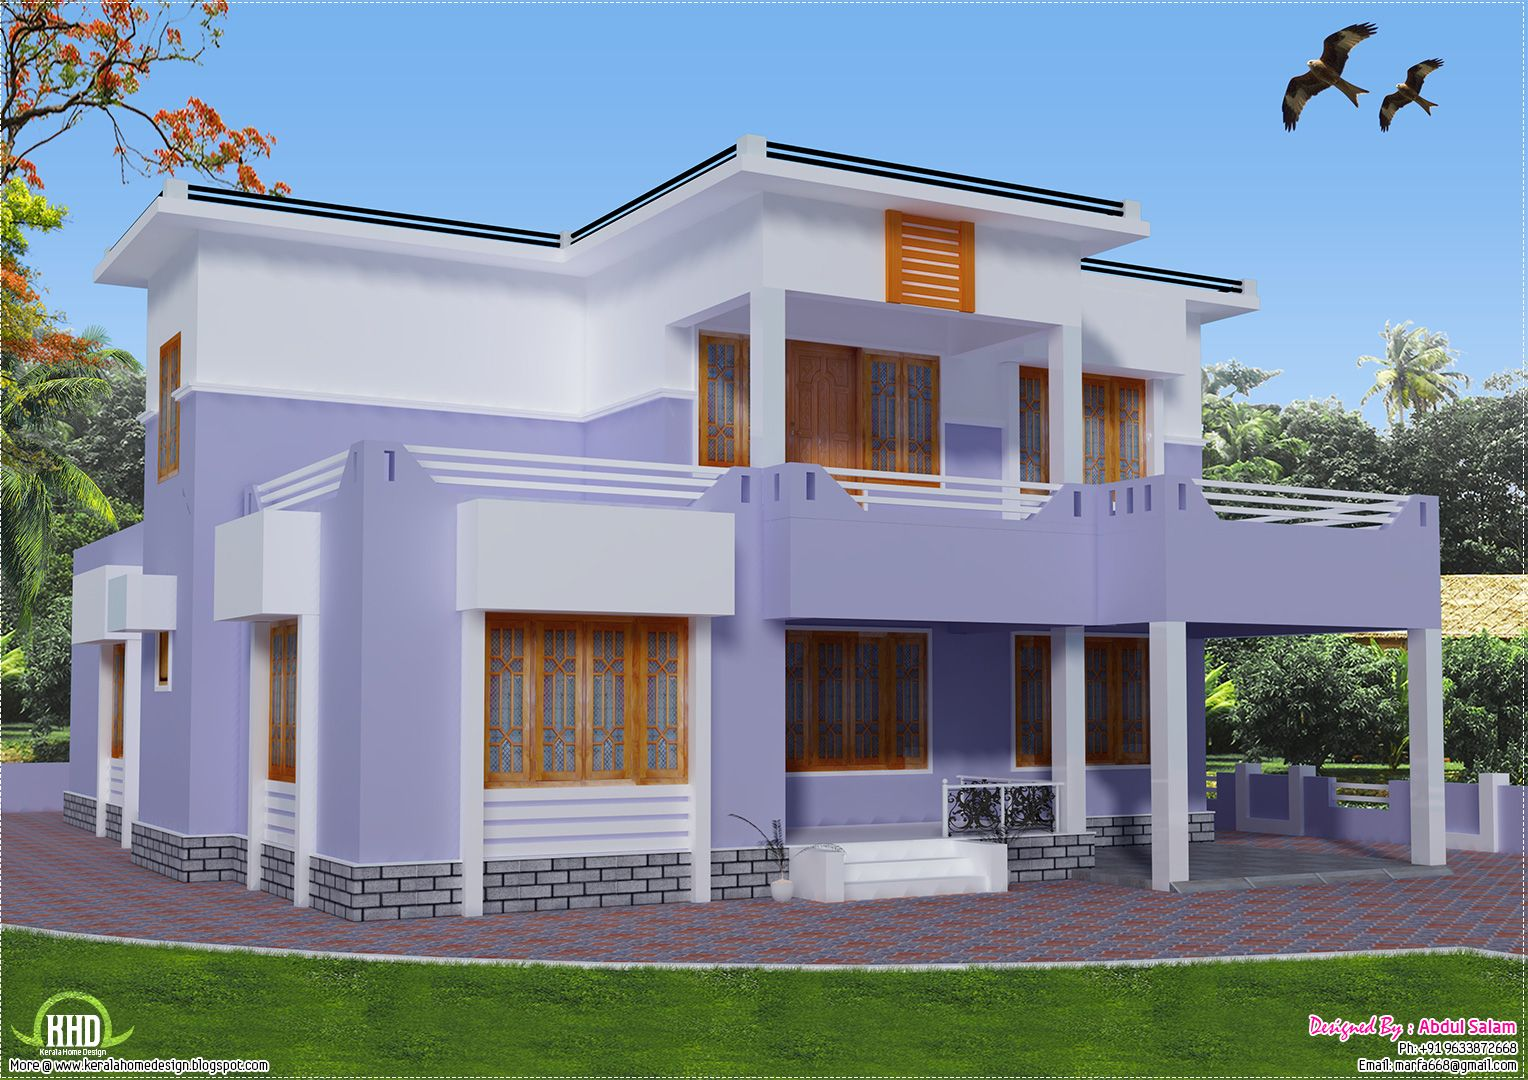 kerala house designs architecture pinterest kerala decorating bedrooms and garage ideas